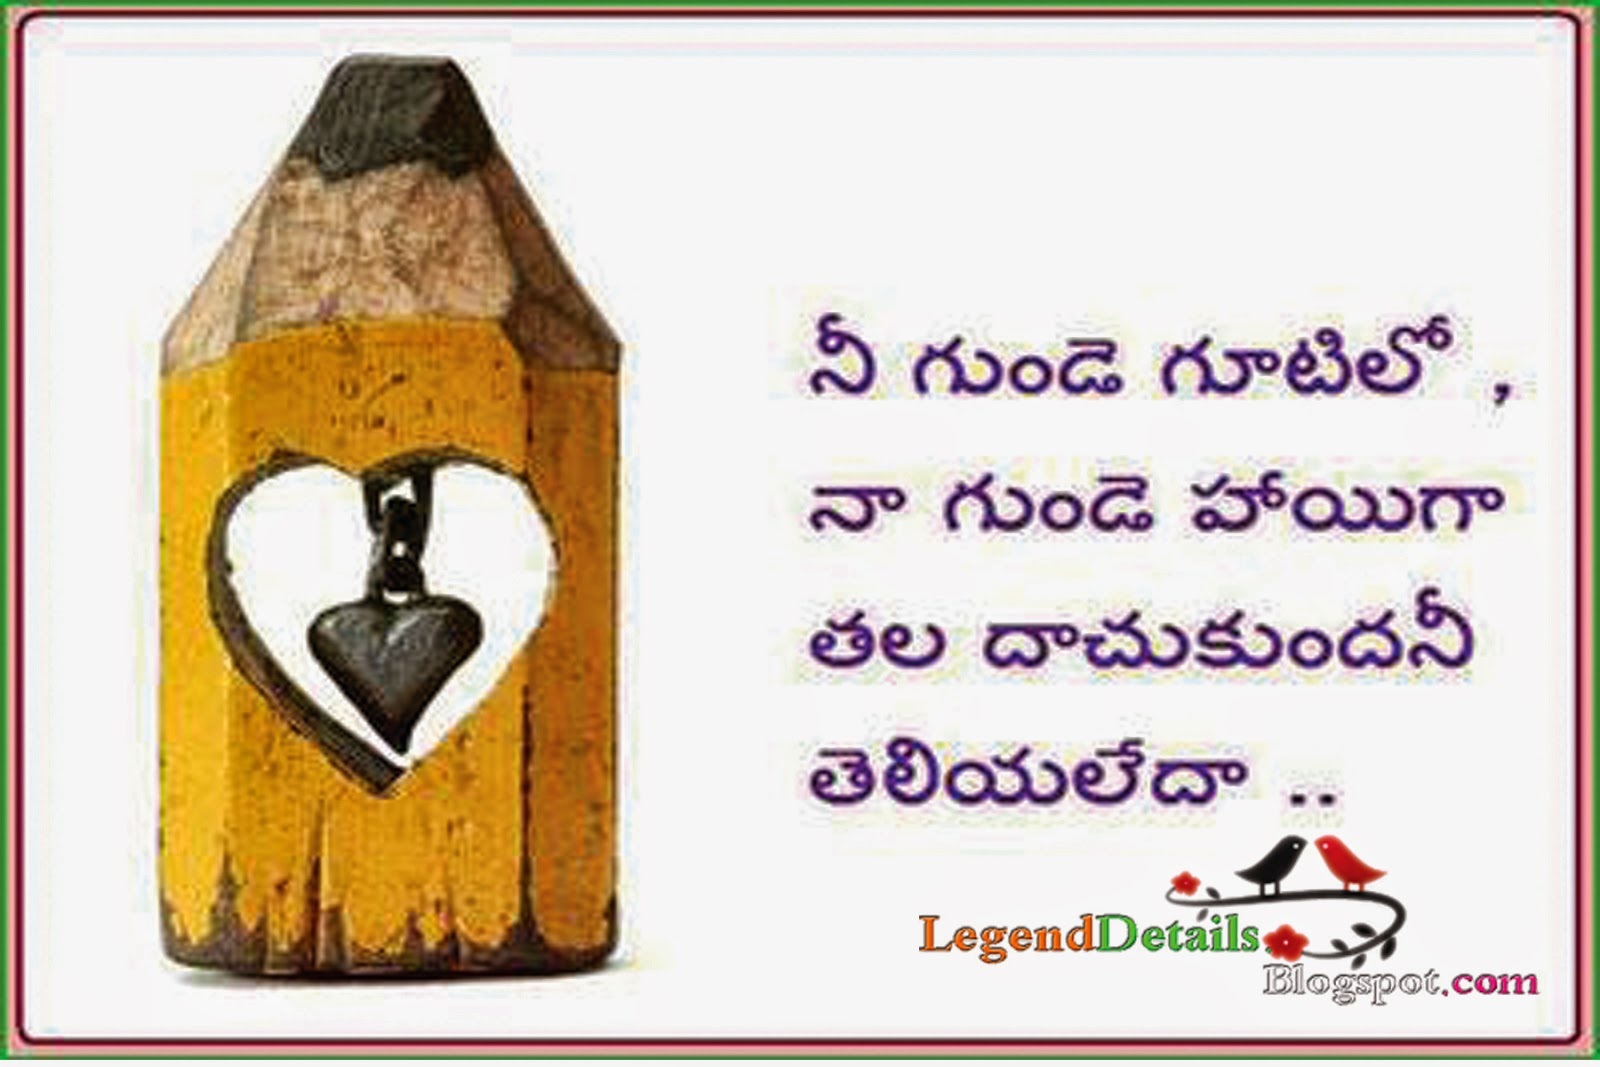 Telugu Love Quotes Entrancing Famous New Telugu Love Quotes  Hd Wallpapers  Legendary Quotes